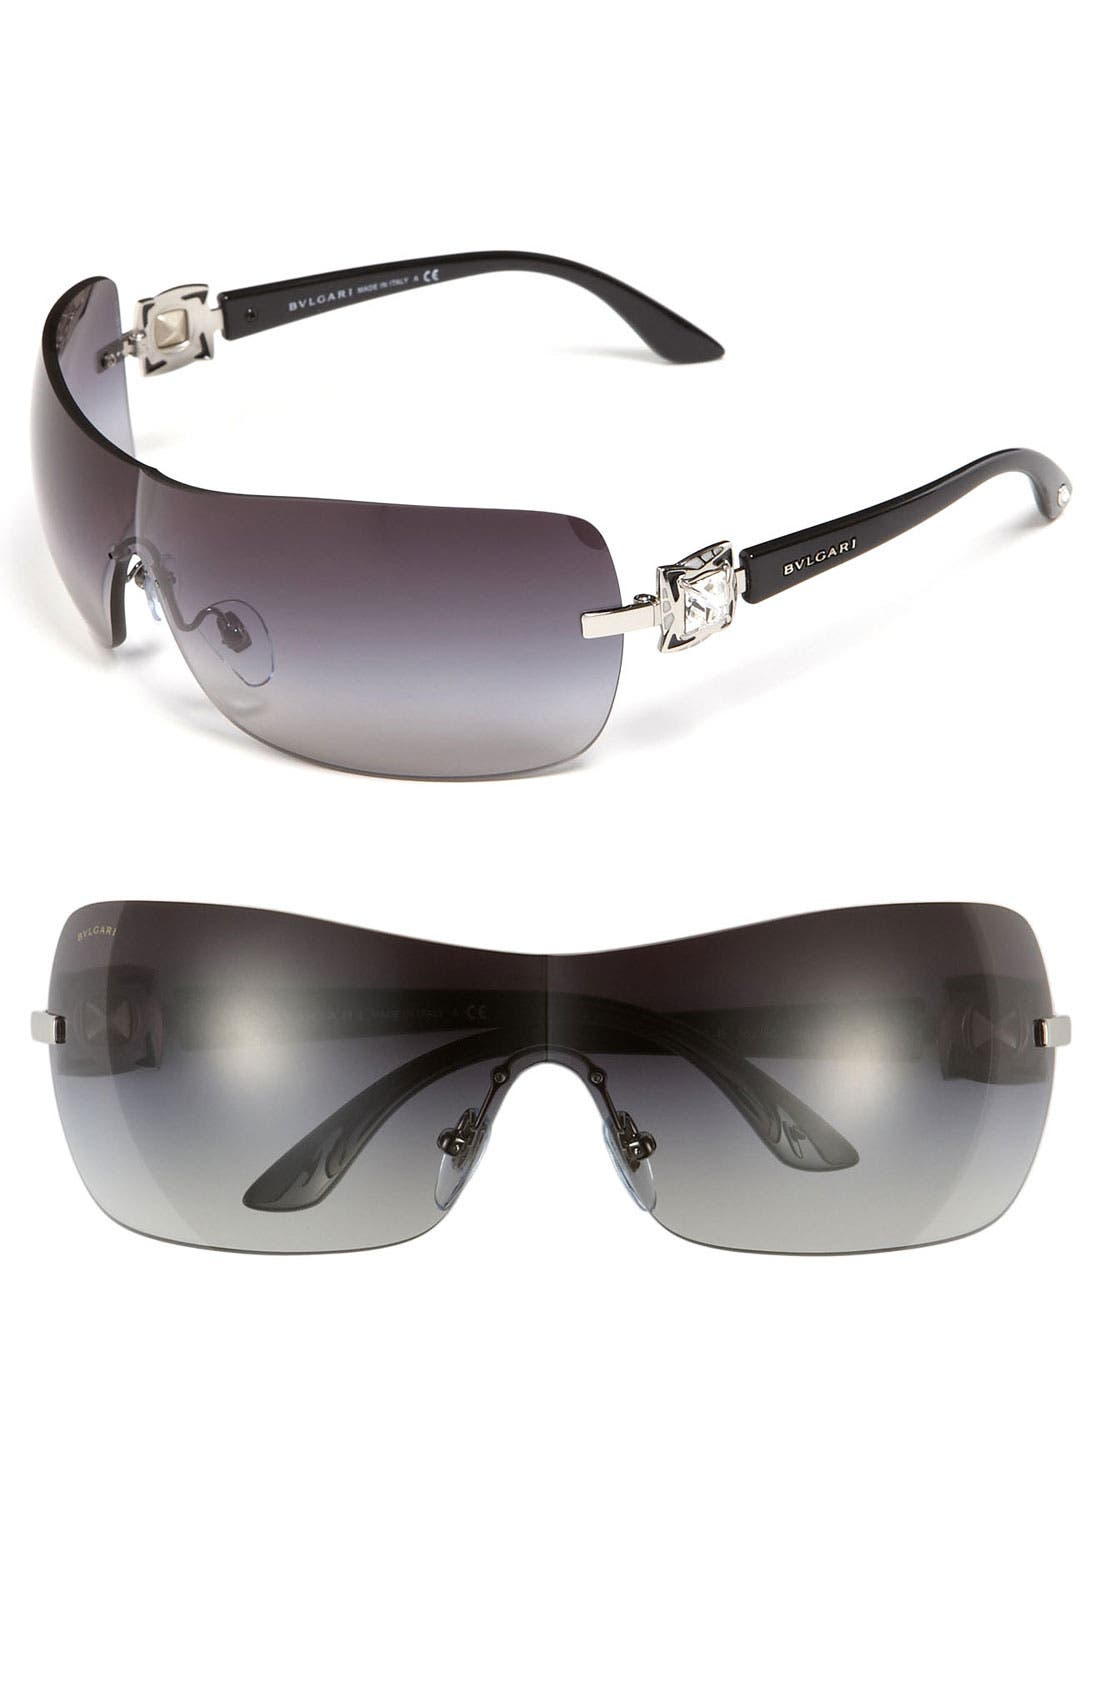 Alternate Image 1 Selected - BVLGARI 63mm Swarovski Crystal Shield Sunglasses